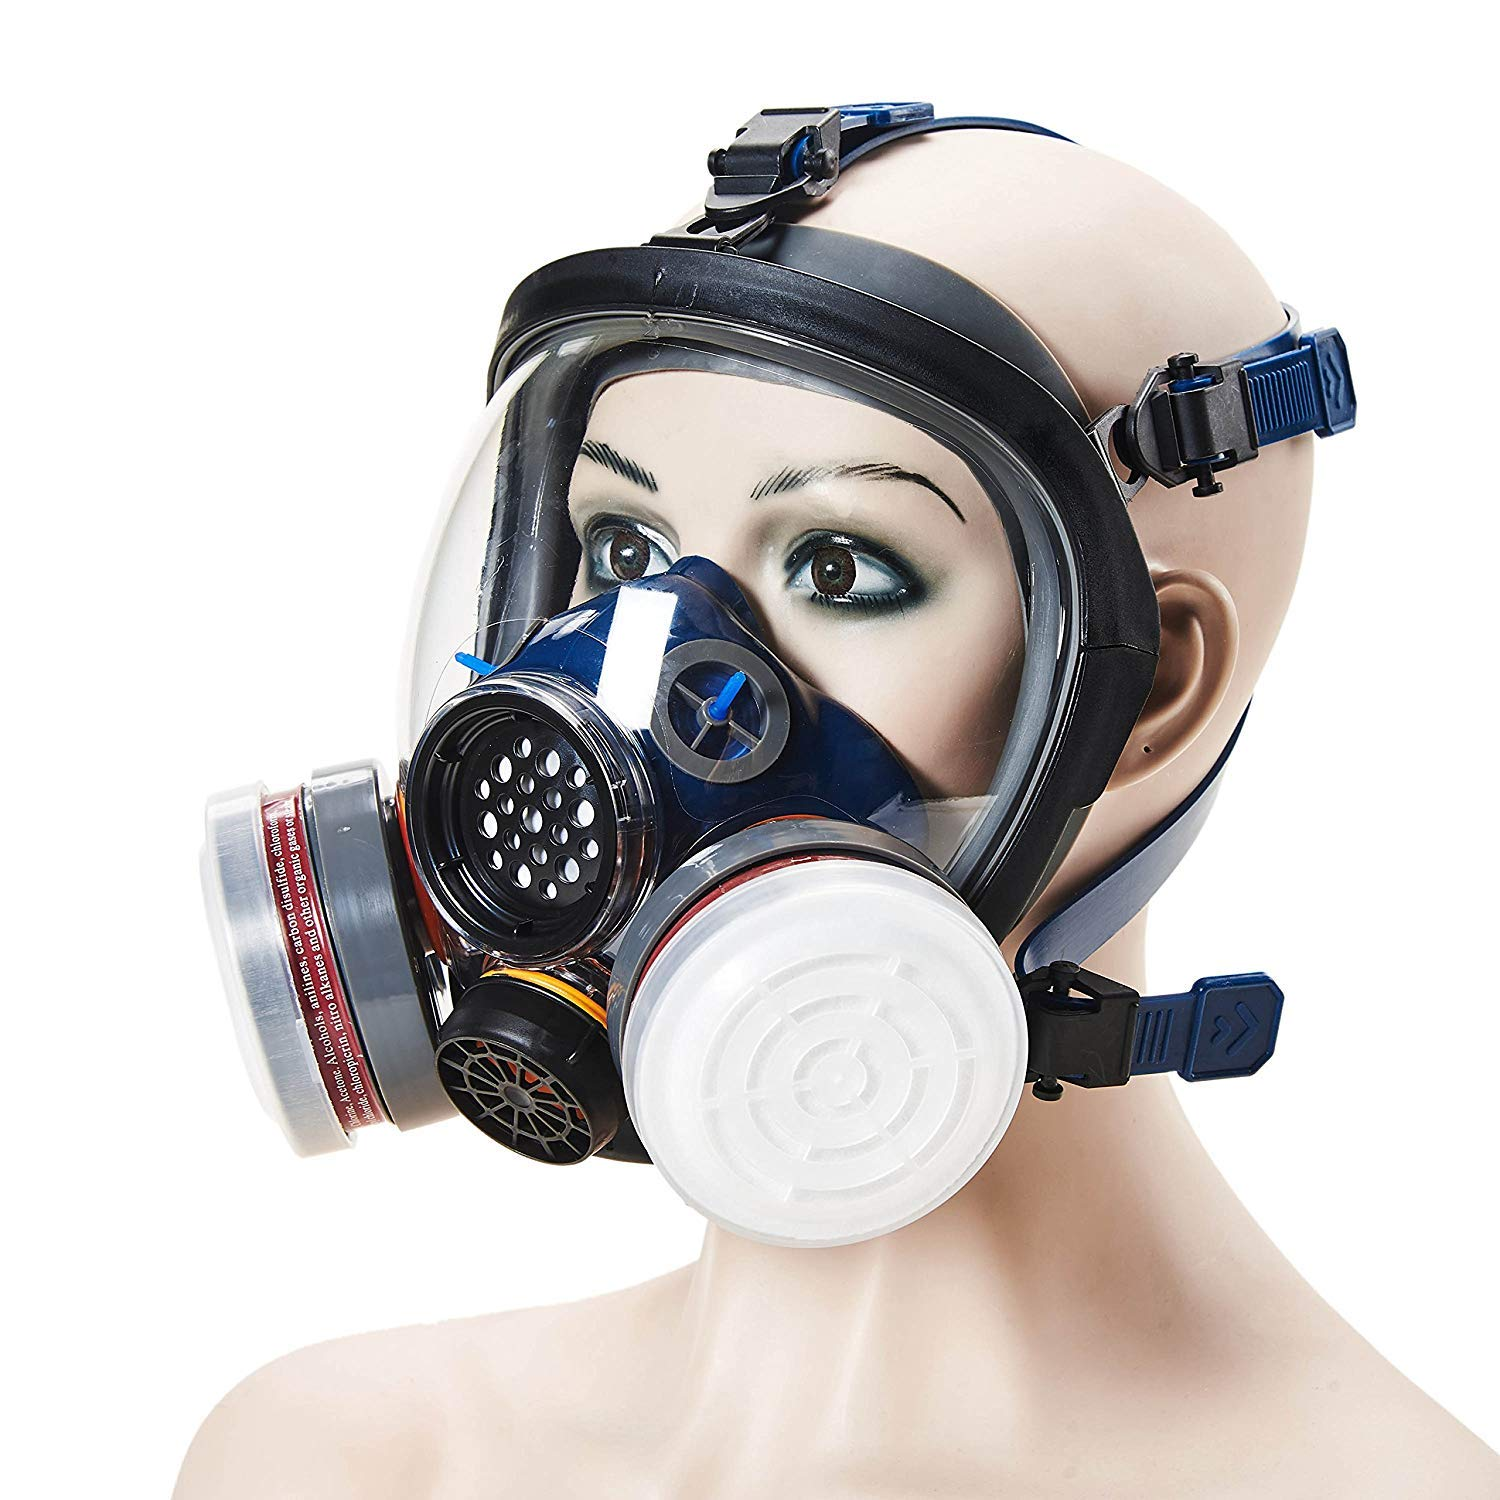 Phoenixfly99 Organic Vapor Full Face Respirator Safety Mask N95 Double Activated Charcoal Air filter For Painting Formaldehyde Chemicals Respiratory Protection (Safety mask+1 Pair 3# filter) by Phoenixfly99 (Image #4)